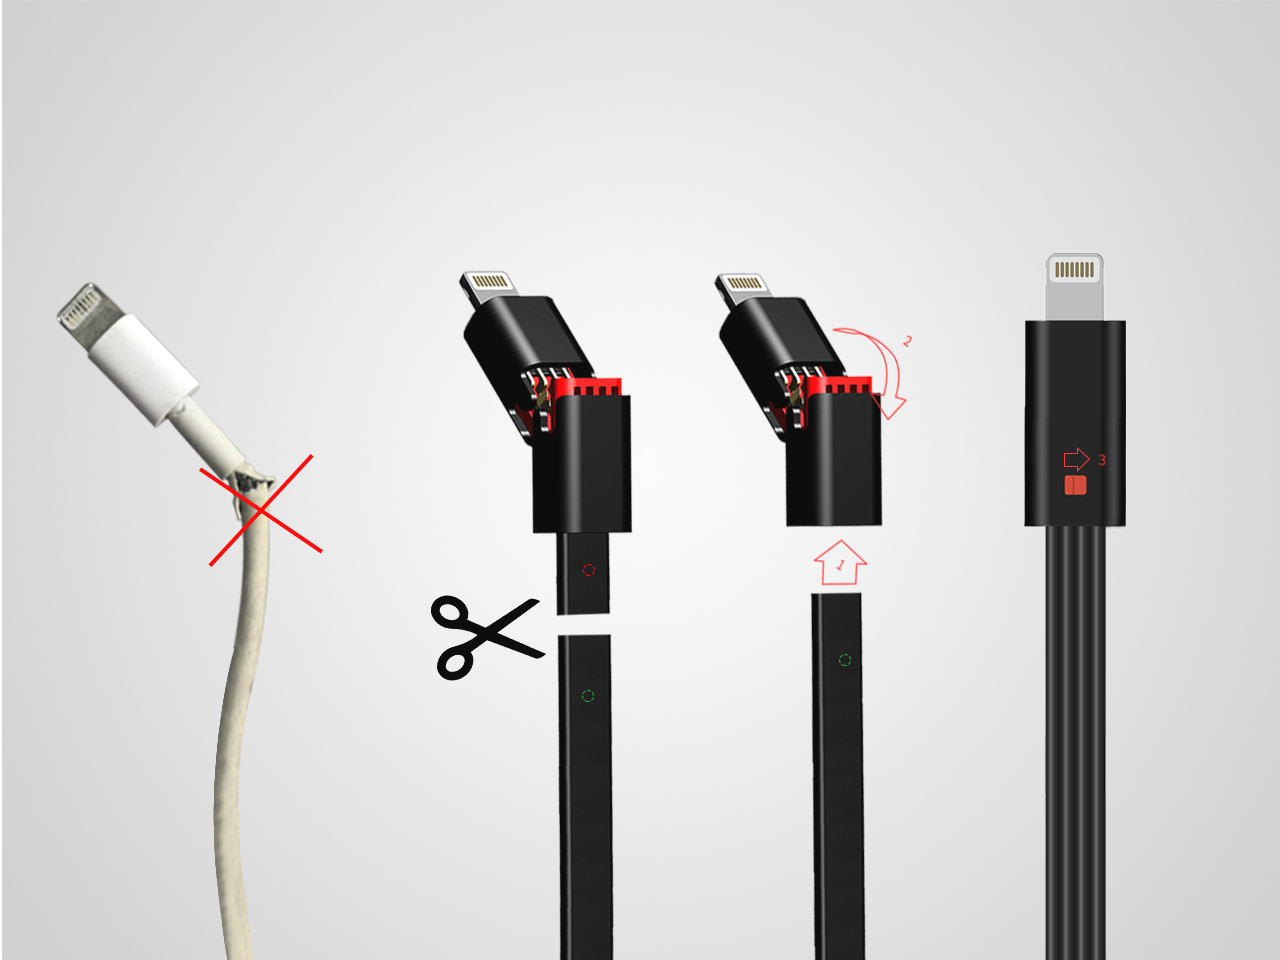 Never again worry about replacing your broken USB cable.  - This is the resilient USB cable you have been dreaming of owning and the most eco-friendly USB Cable ever.